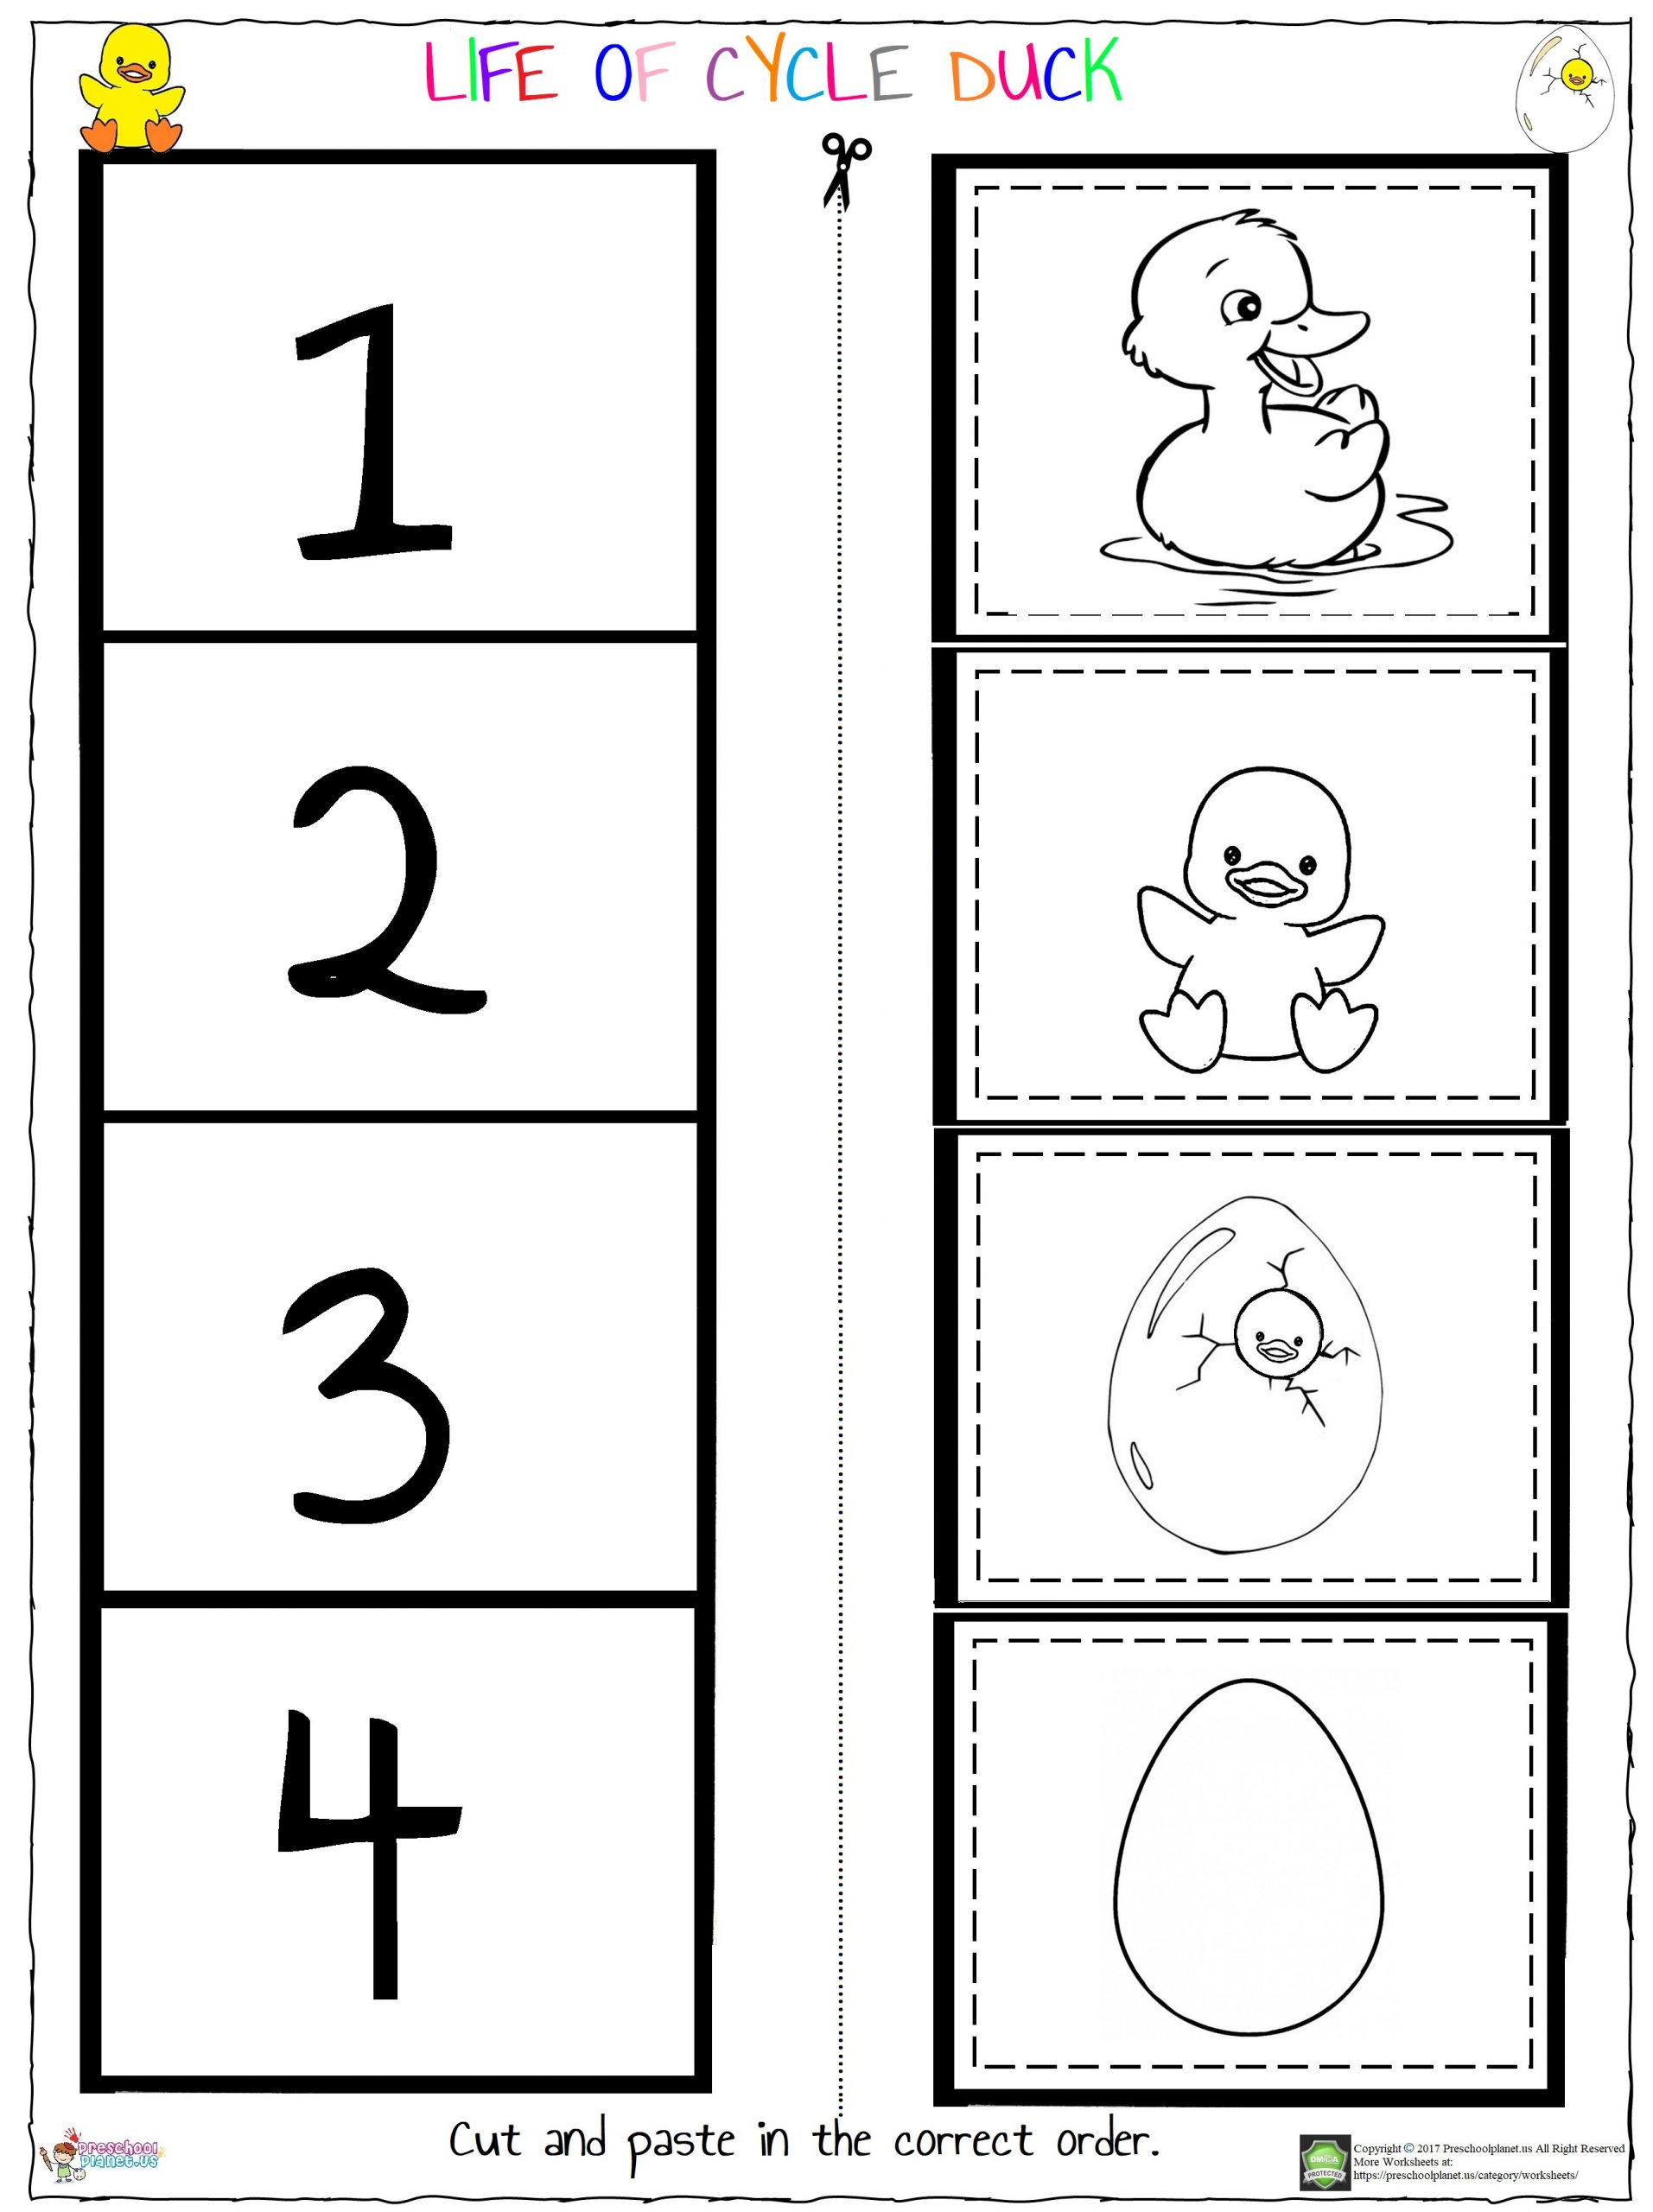 Life of Cycle Duck Worksheet